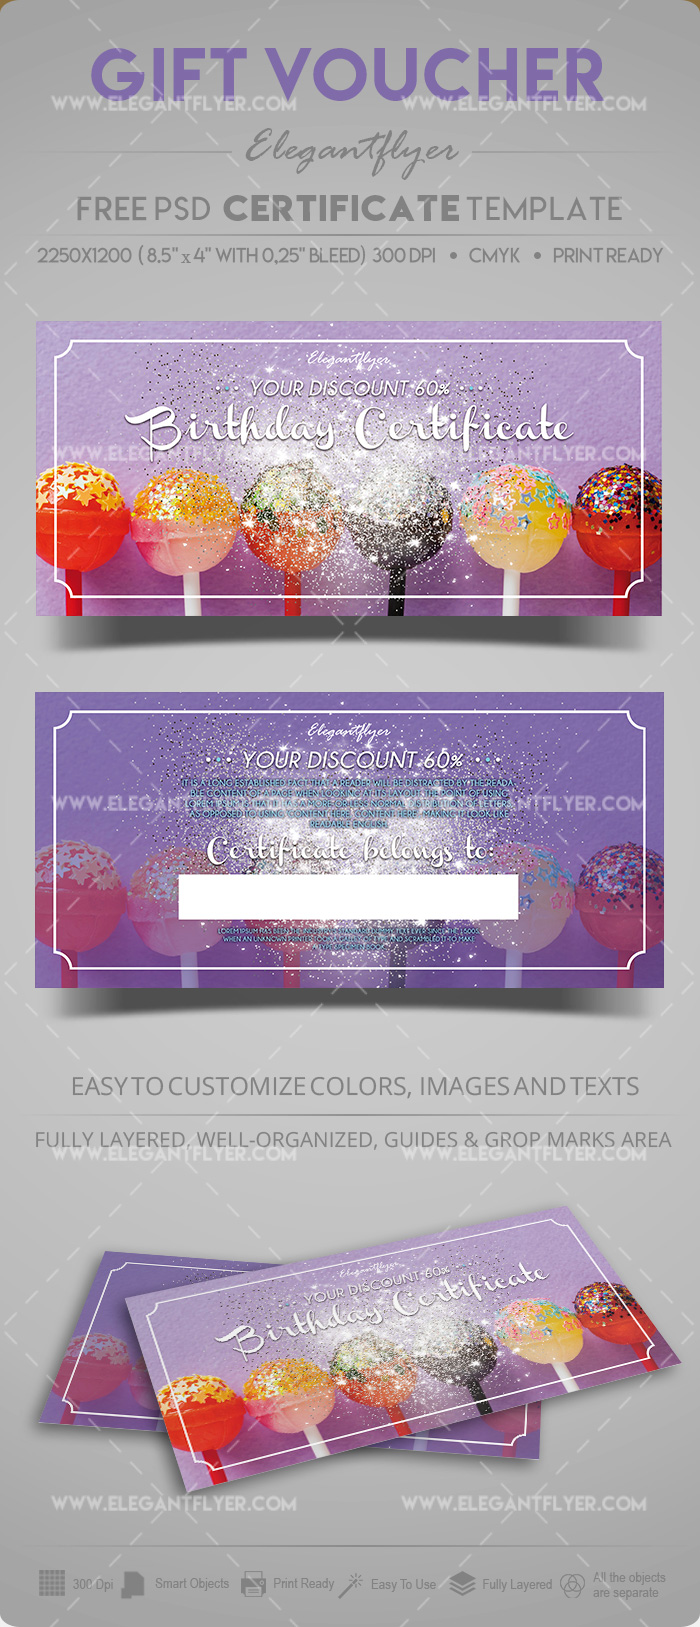 Free Birthday Gift Certificate Template in PSD